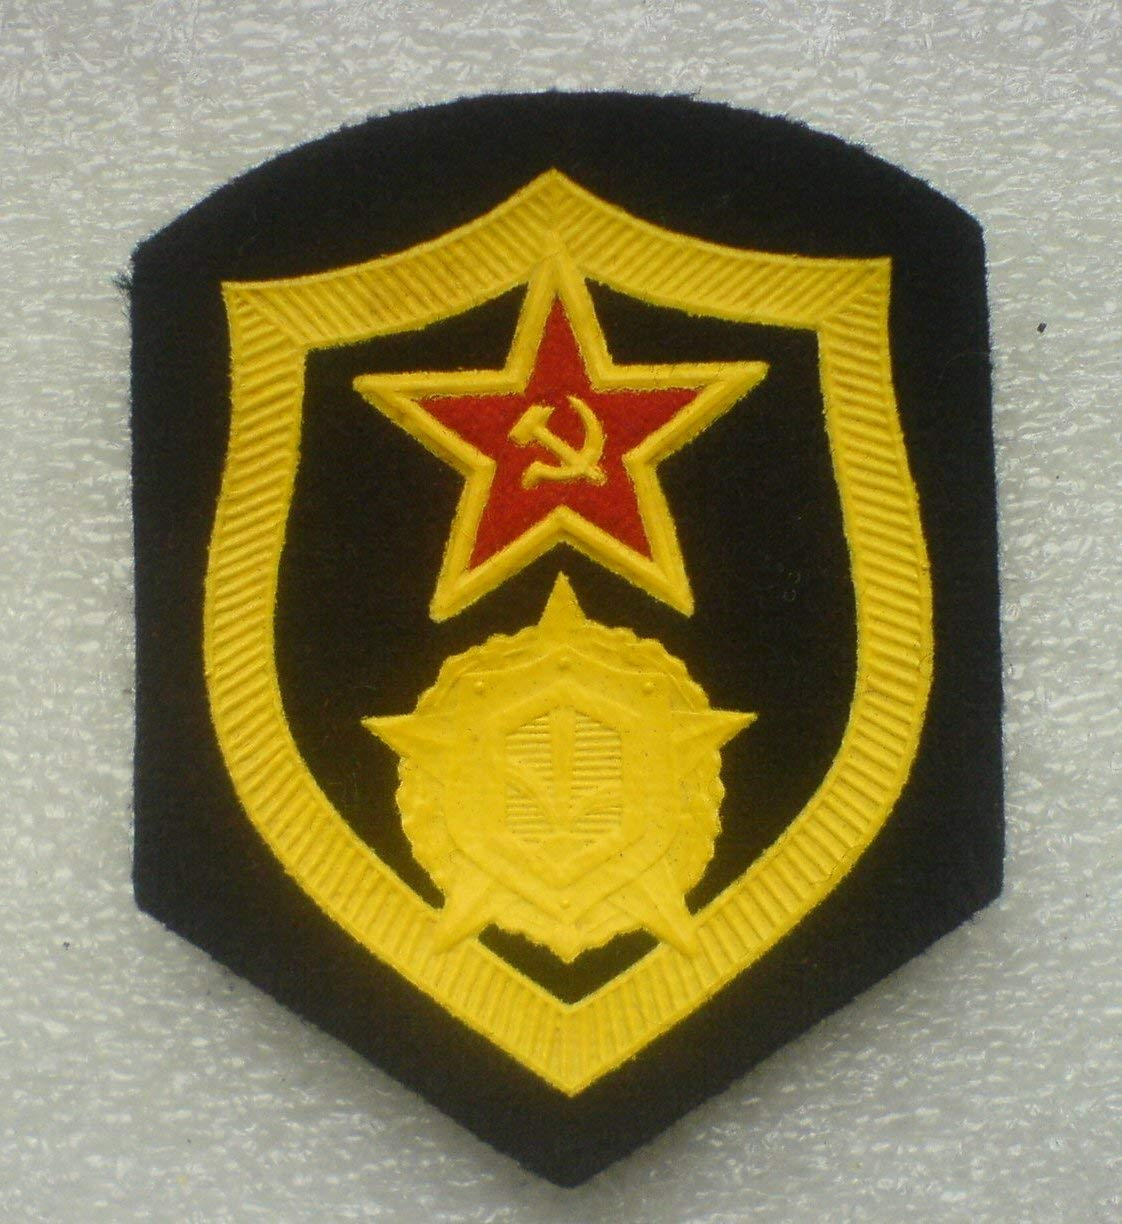 Chemical Corps Patch USSR Soviet Union Russian Armed Forces Military Uniform Cold War Era